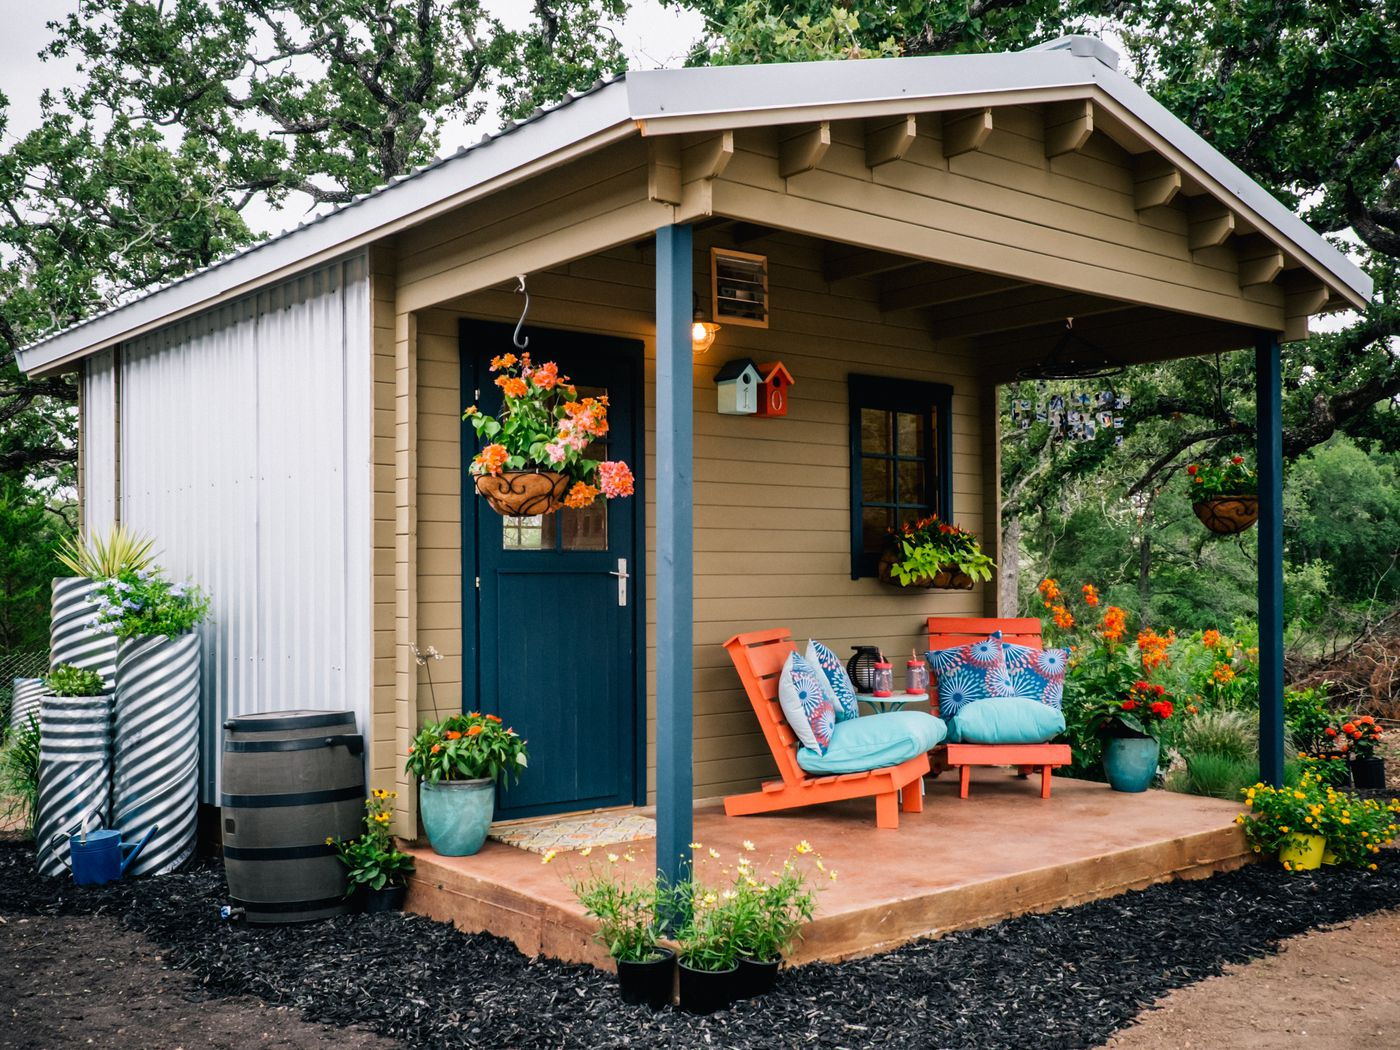 Tiny Houses in Austin are Helping the Homeless, but It Still Takes